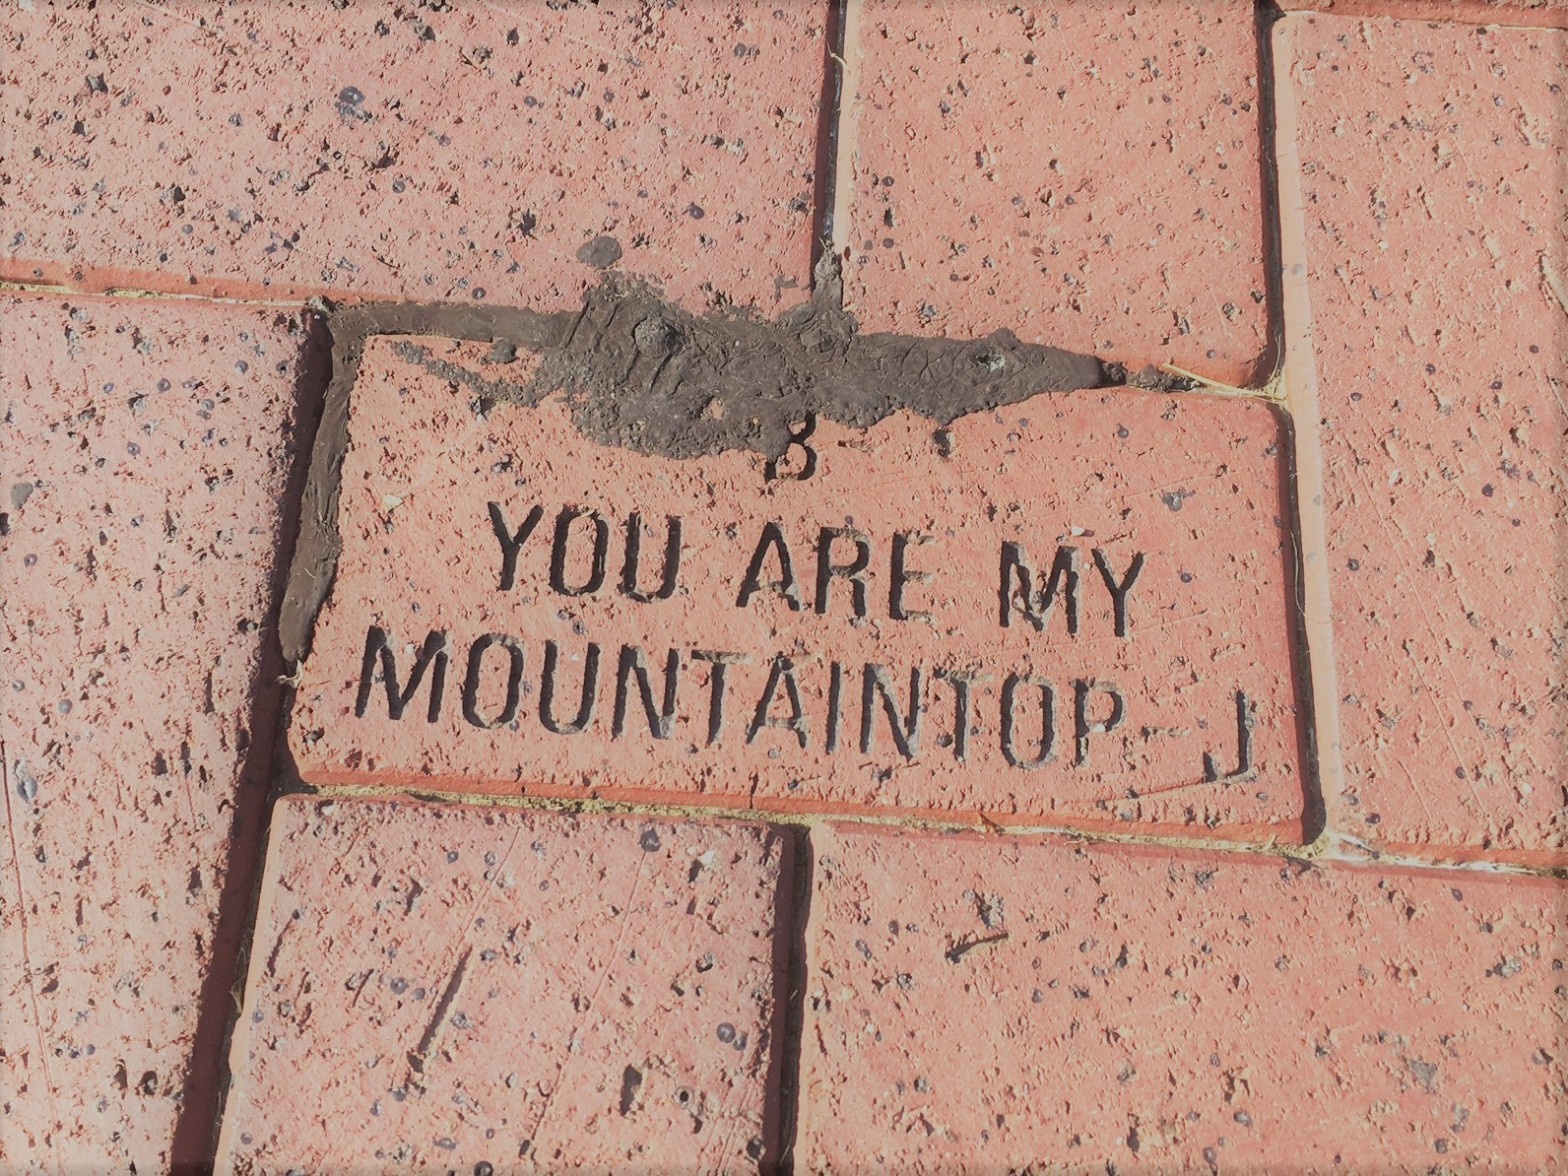 A brick with the words 'You are my mountaintop' engraved